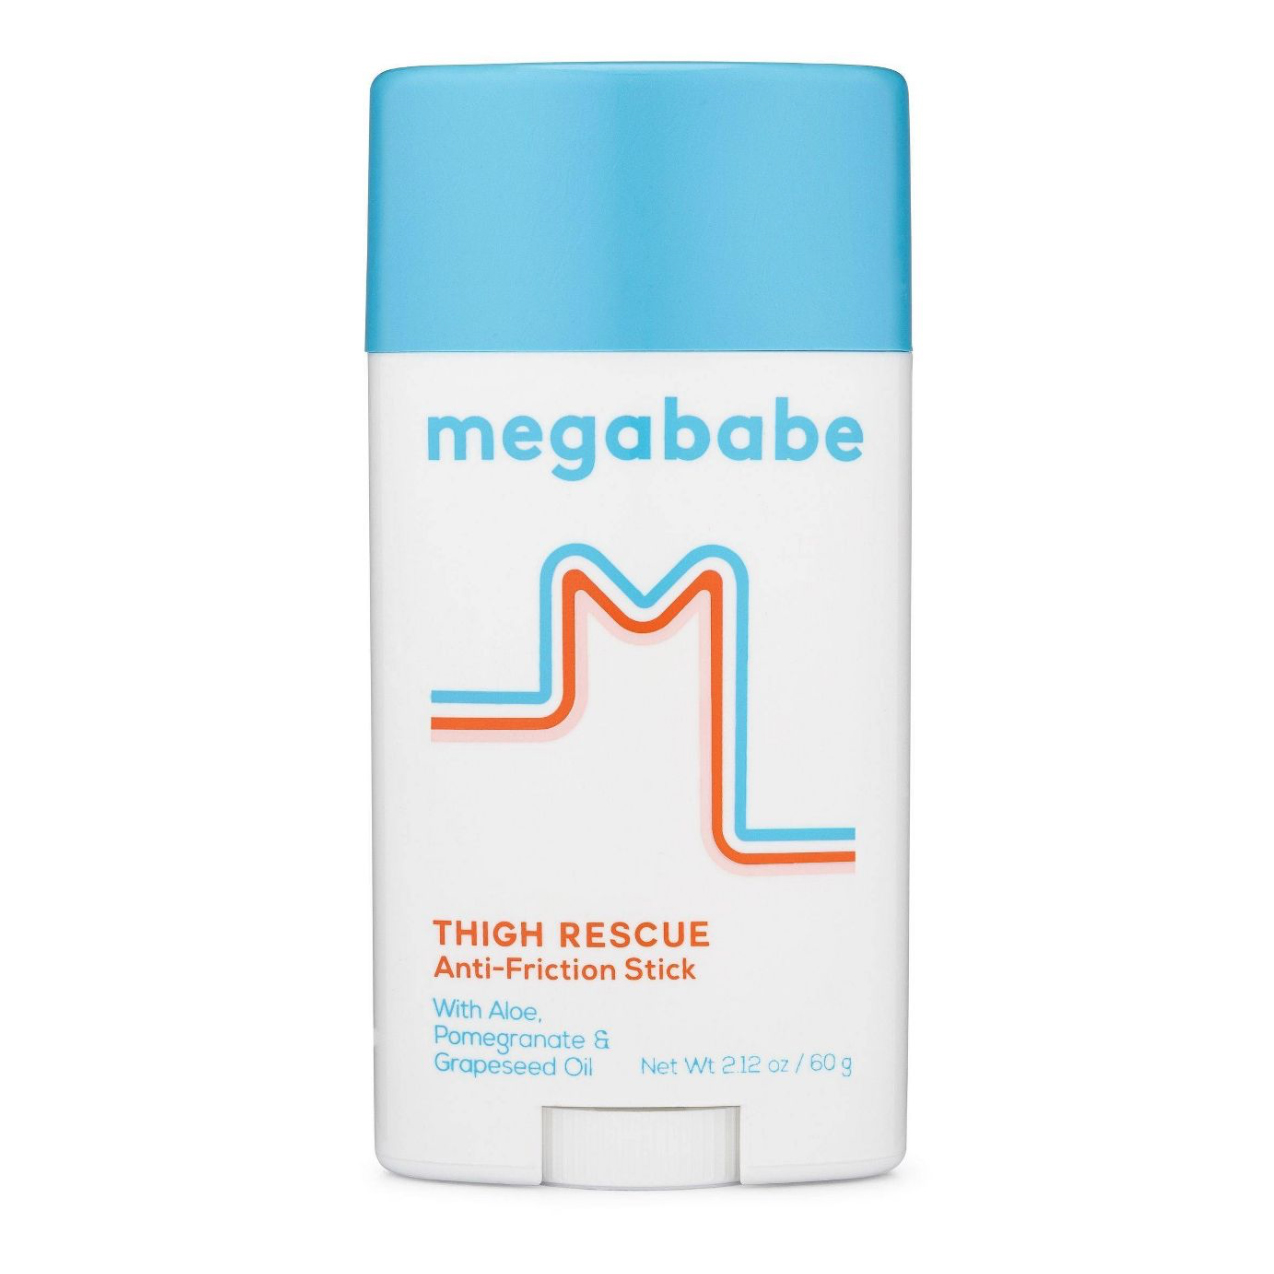 megababe thigh rescue review anti-chafing stick